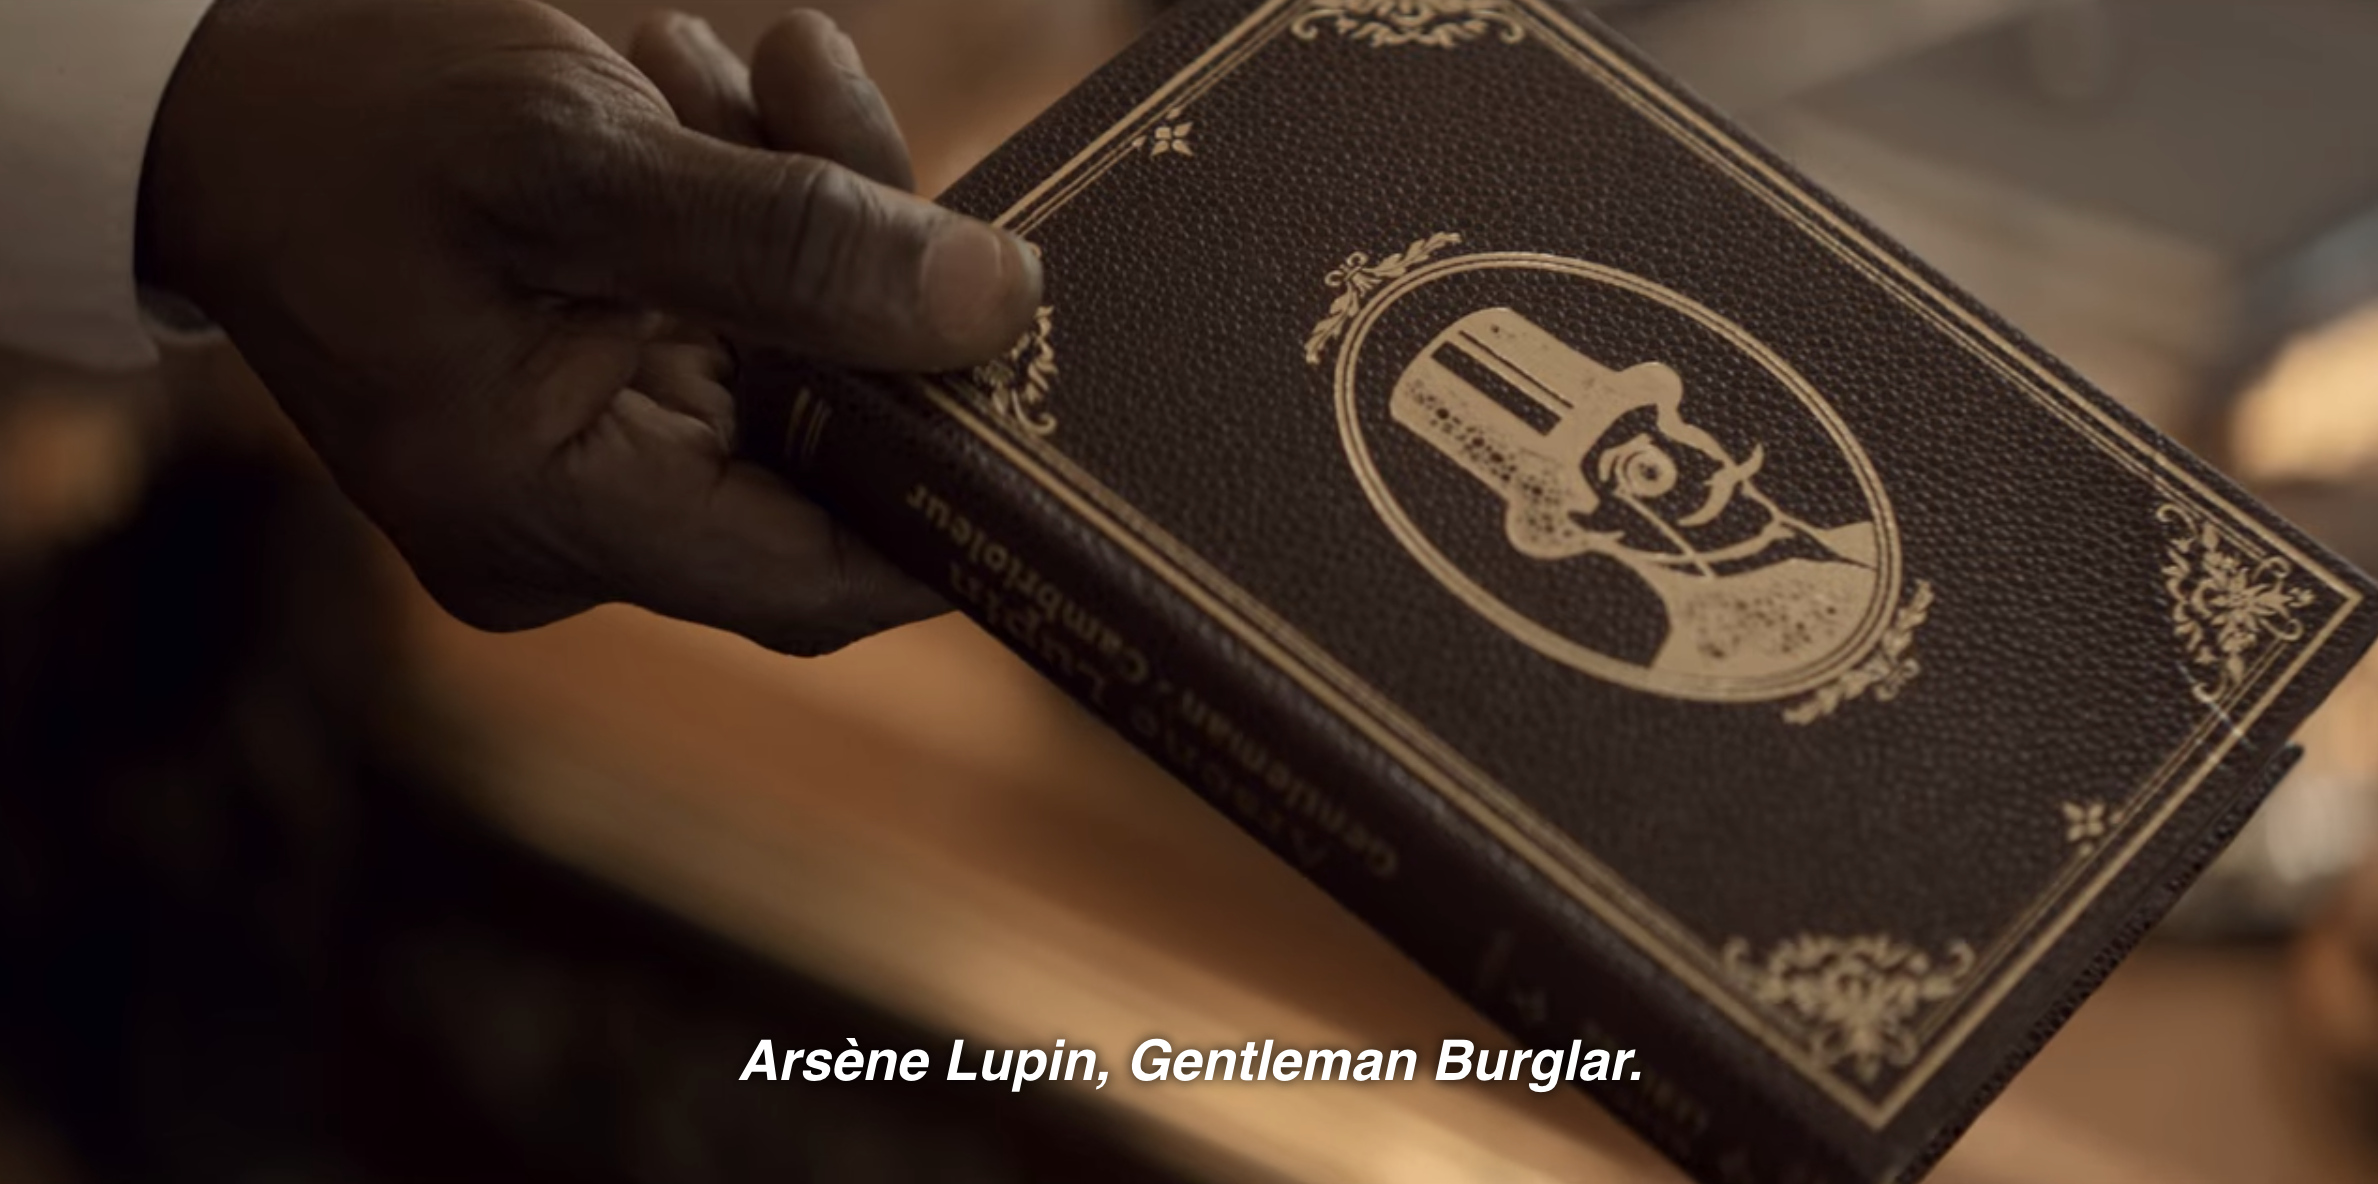 A scene from the show where Babakar hands Assane the Lupin book